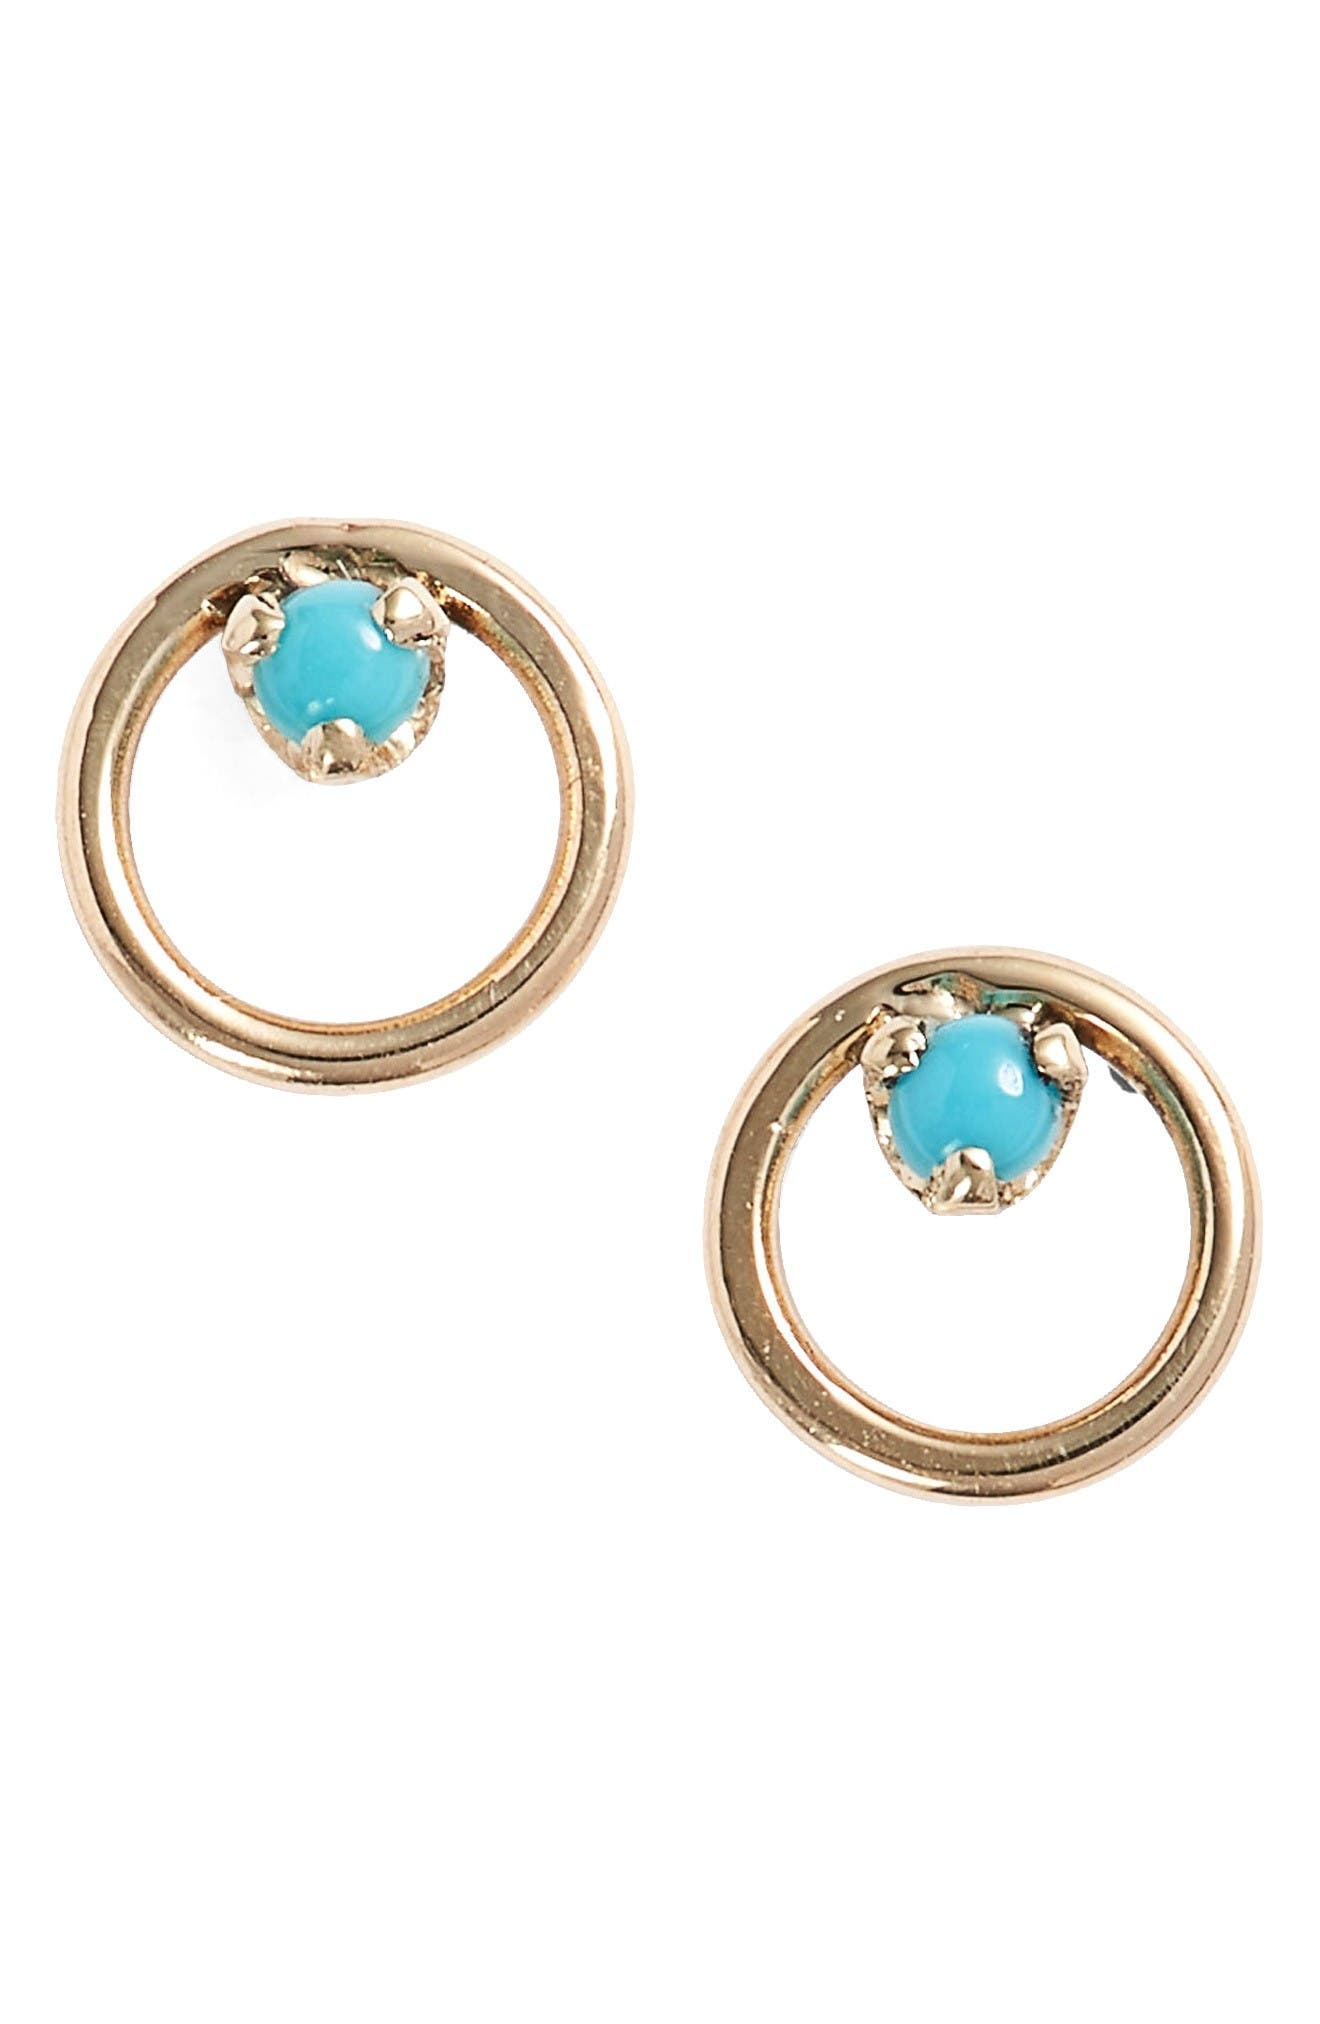 Zoë Chicco Turquoise Circle Stud Earrings